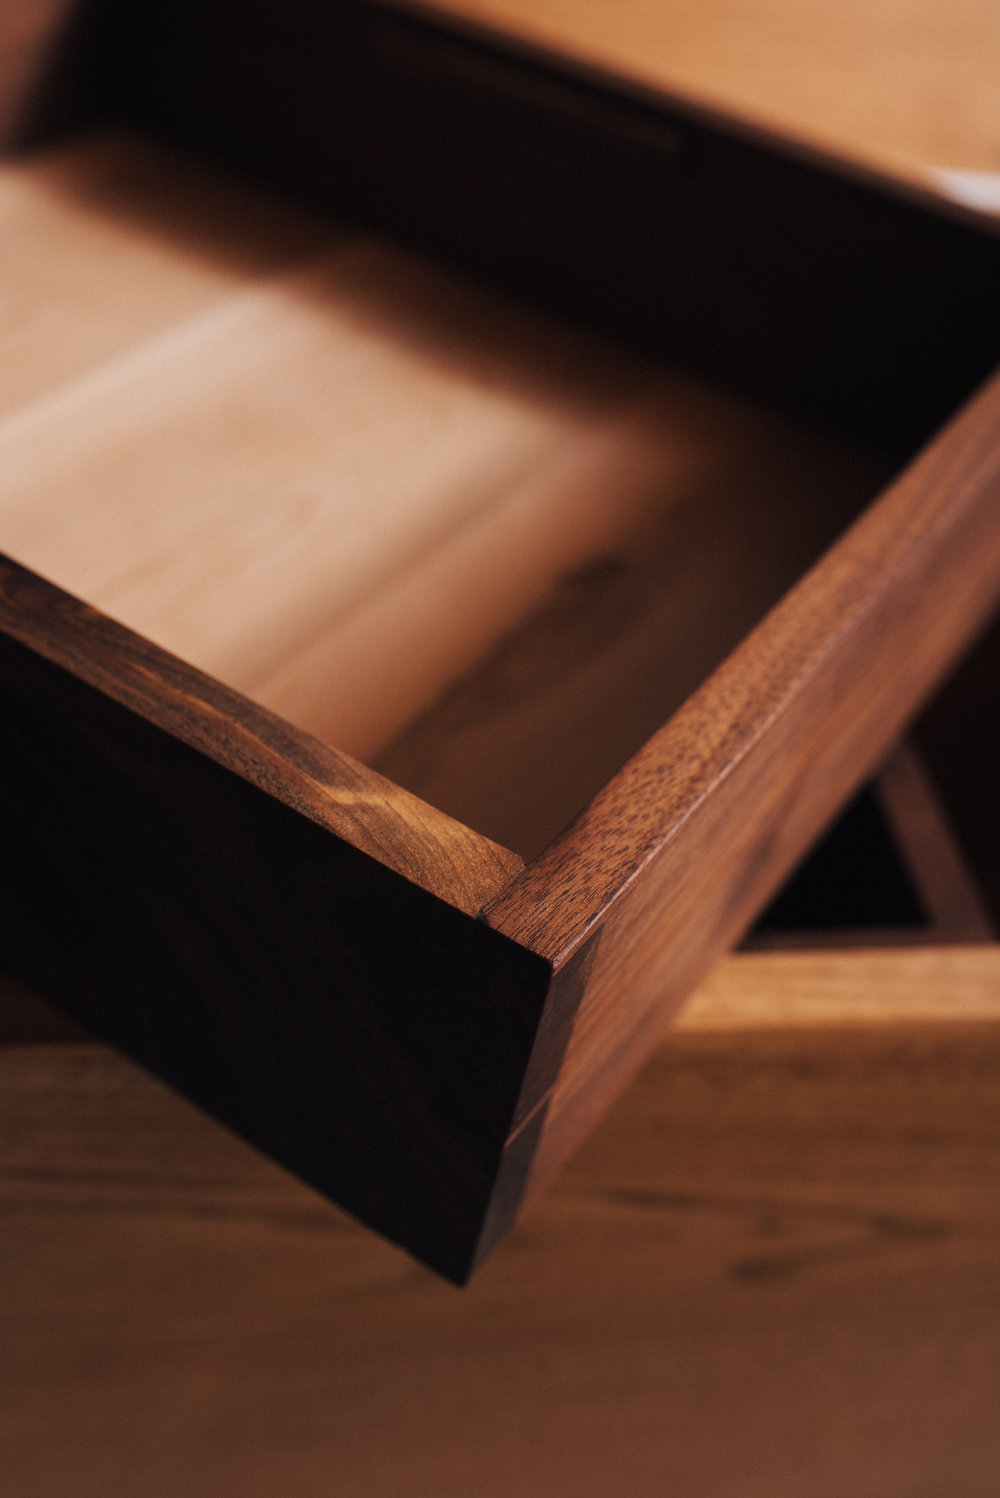 Black walnut dovetailed storage boxes. White cedar bottoms.